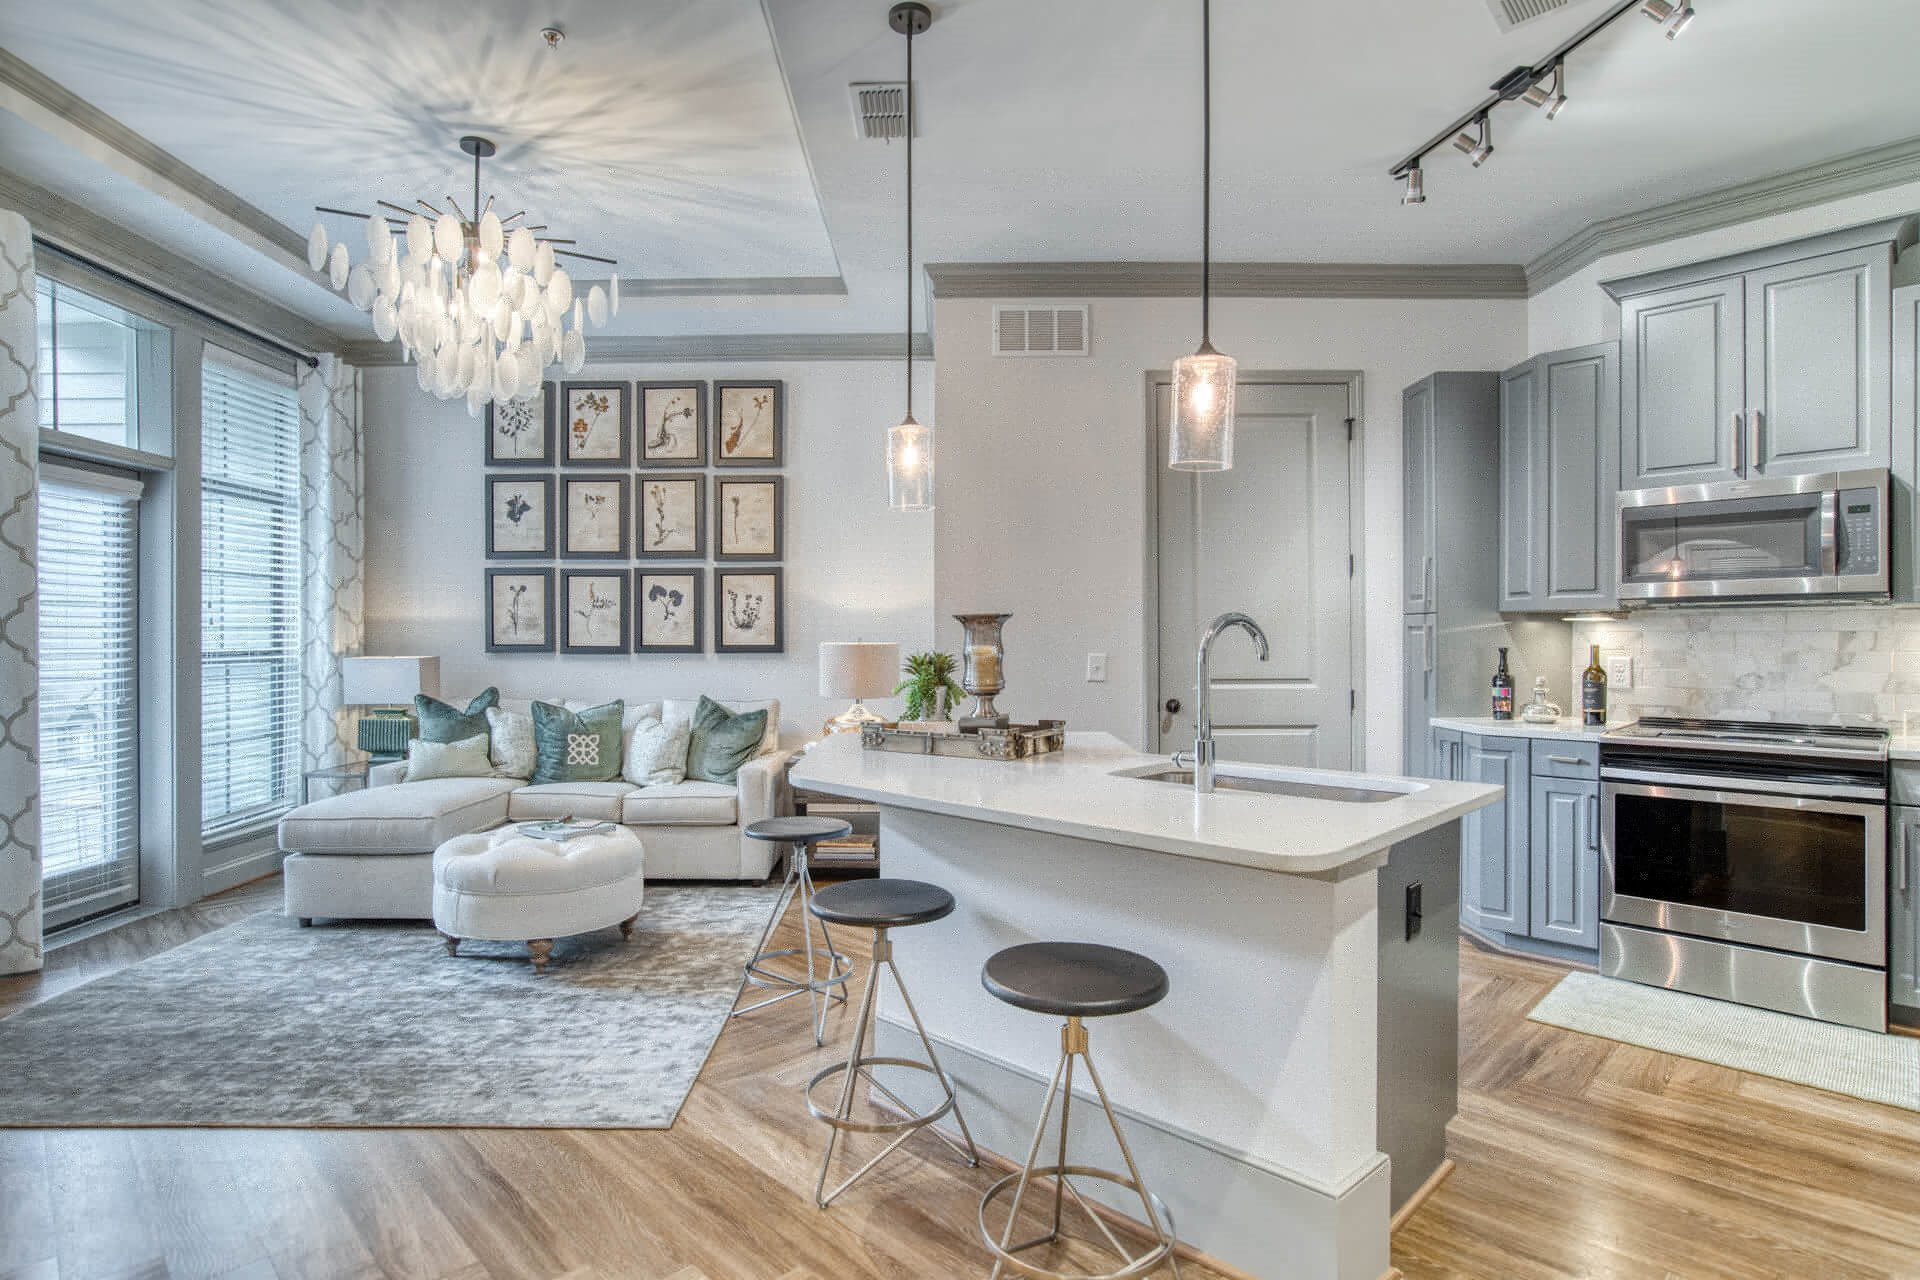 Luxe Kitchens With New Appliances at Windsor Chastain, Atlanta, Georgia